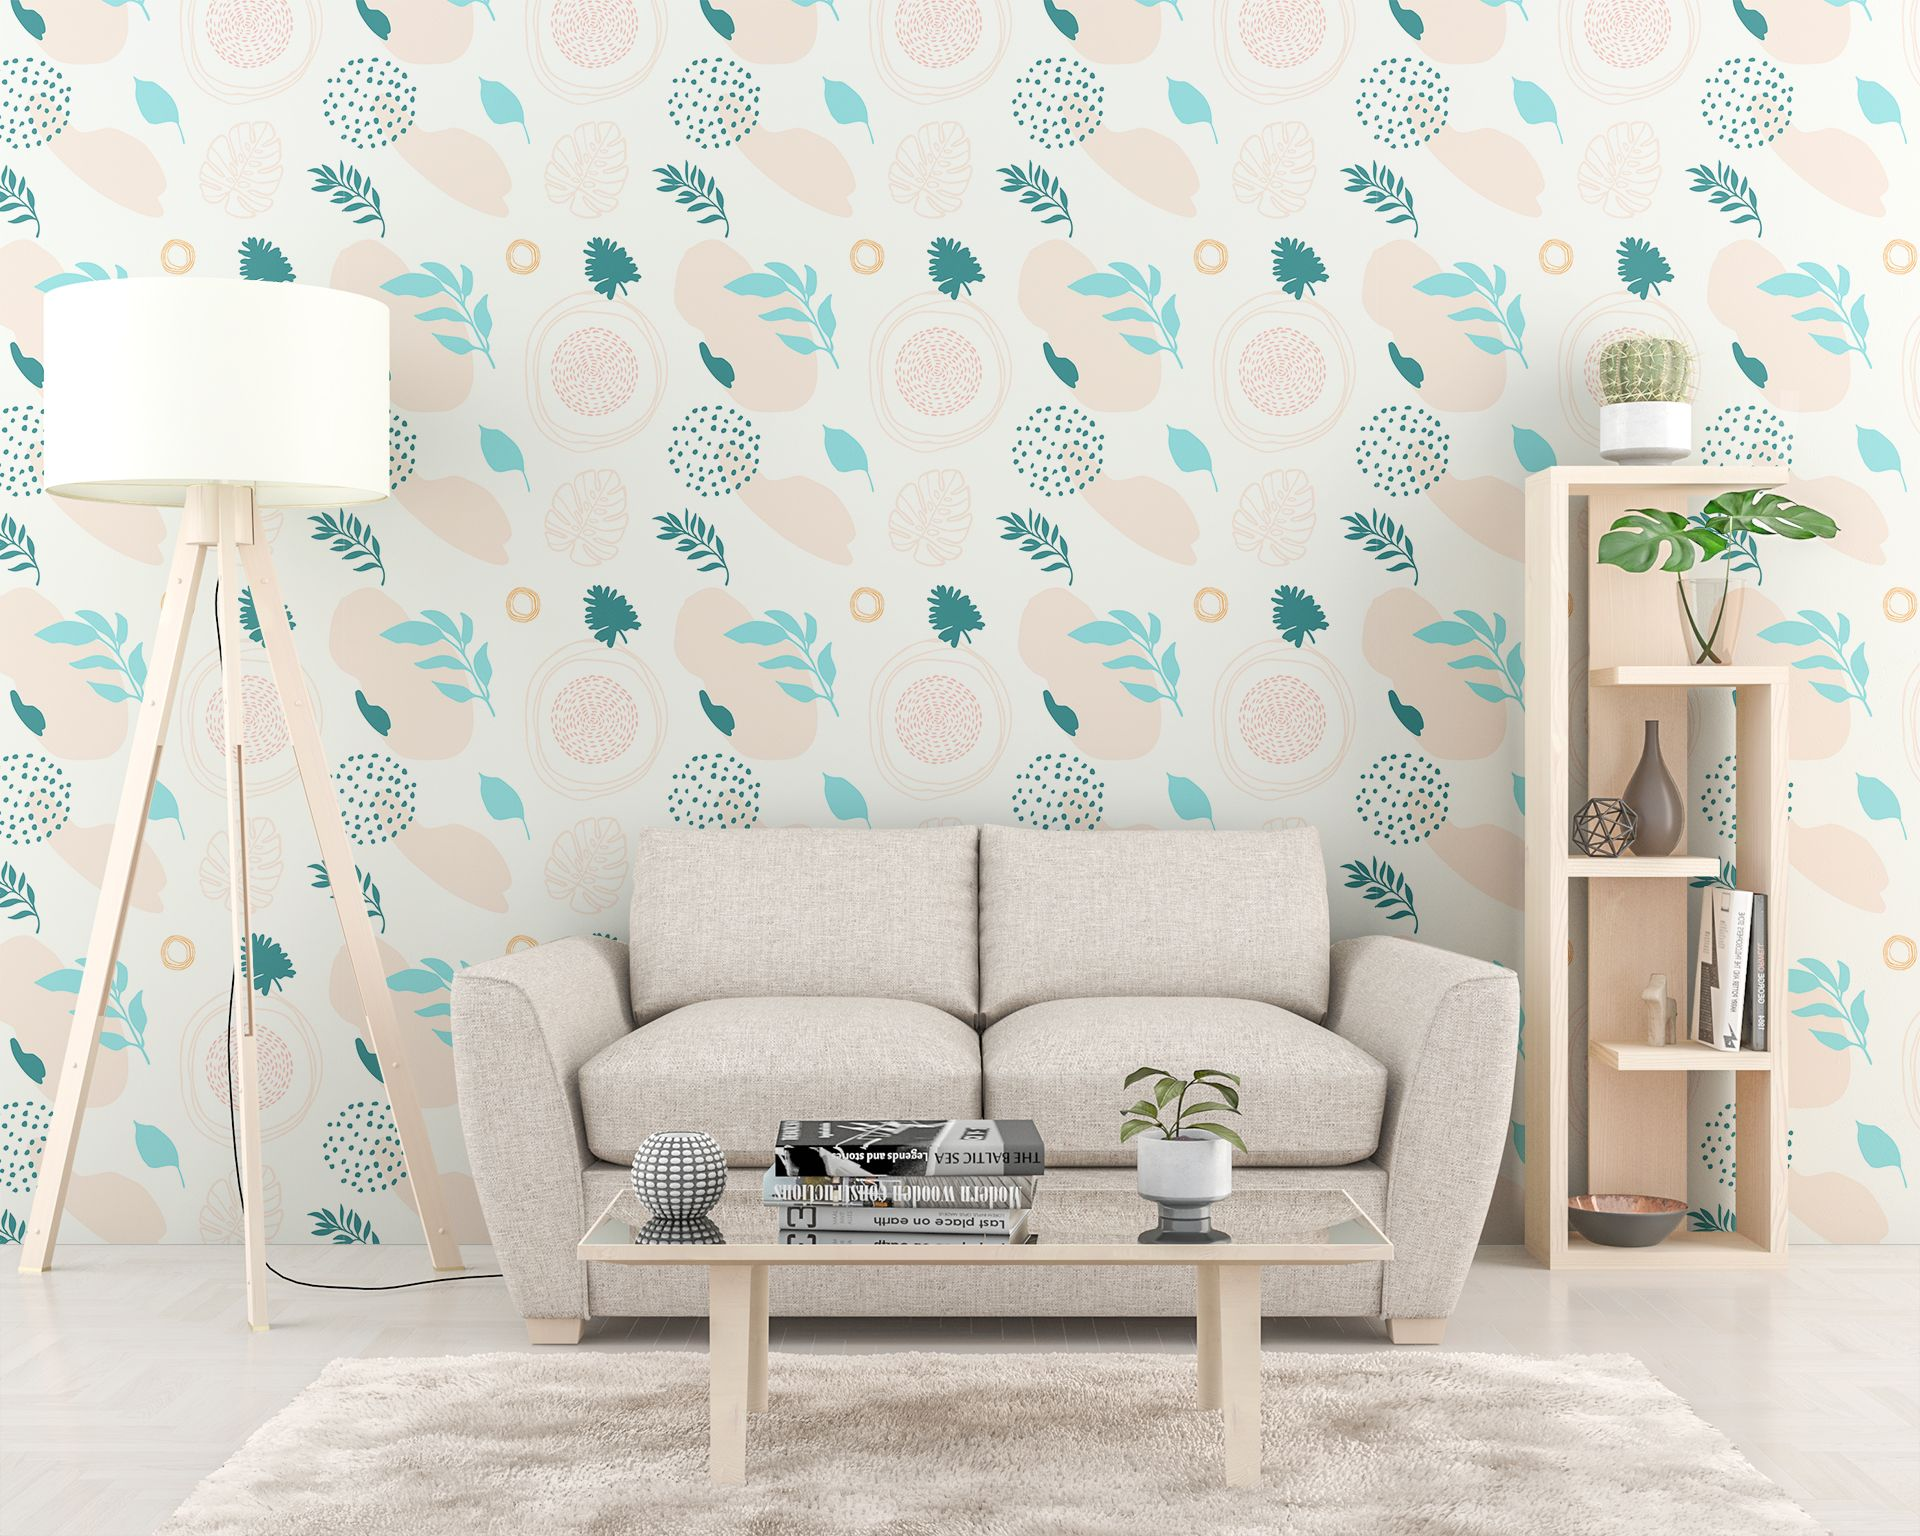 Get our new, Self Adhesive, Hand Drawn Removable Wallpaper. Non-toxic WallaWall Wallpaper, it will give the rooms in your home a colorful meaning. You can get these from our website.💯 #wallpaper #wallpapers #interiordesign #d #wallpapermurah #wallpaperdinding #homedecor #art #design #wallpapersticker #interior #love #photography #wallpaperdecor #wallsticker #like #anime #walldecor #dekorasirumah #aesthetic #instagram #follow #decor #wallcovering #wallpaperjakarta #nature #tumblr #wall #instago